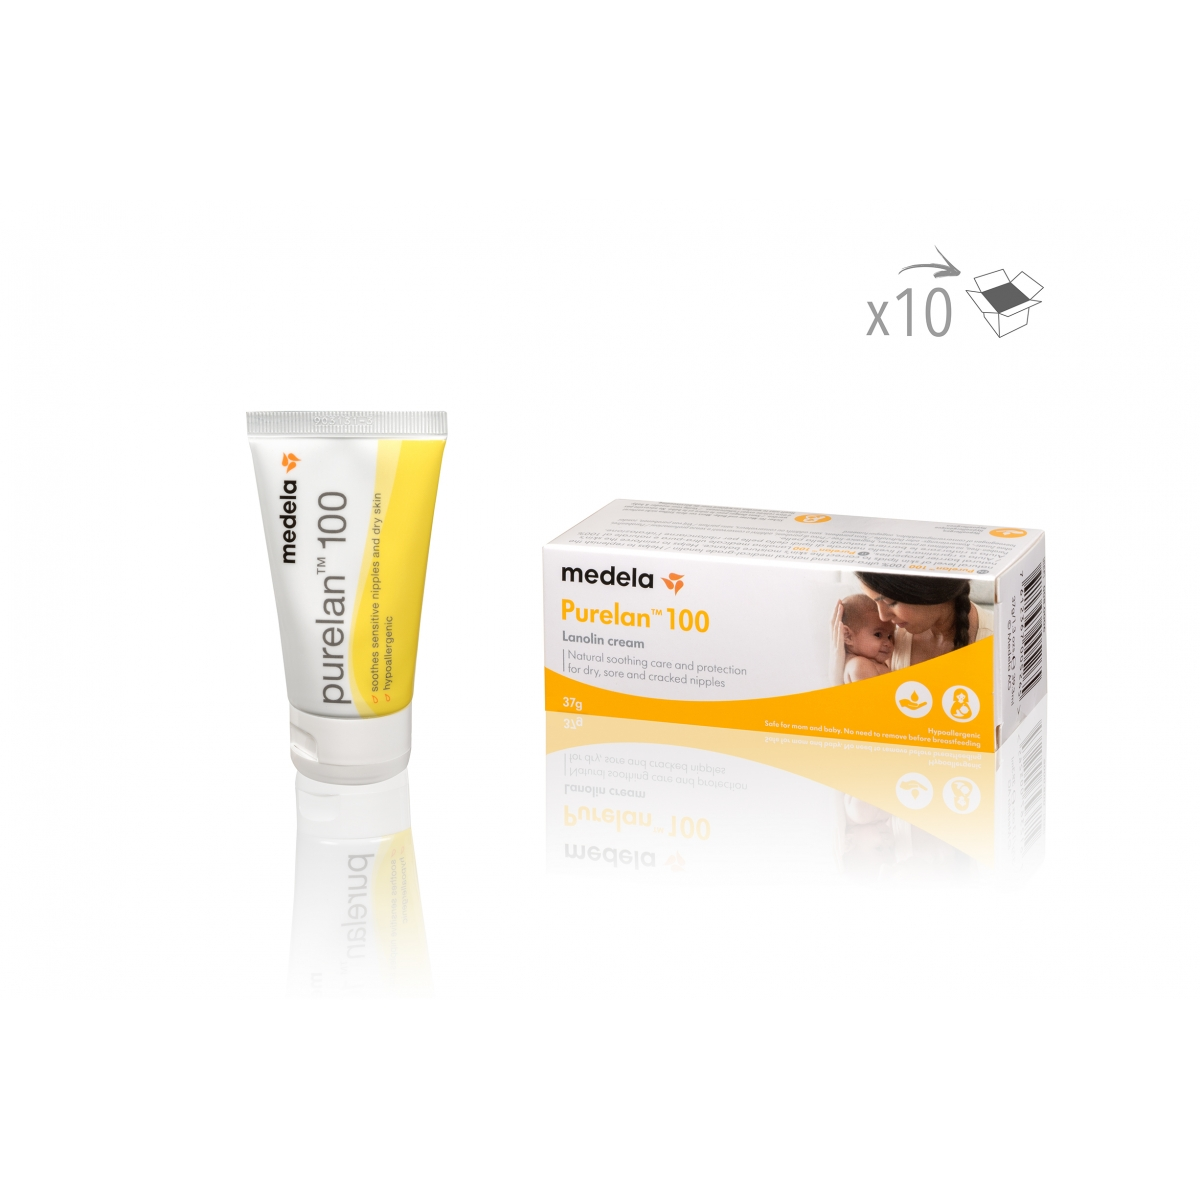 SOINS CANCER - CREME HYDRATANTE SOIN MAMELON POST PIGMENTATION LIFE REPAIR MEDELA (37 g) (x10)